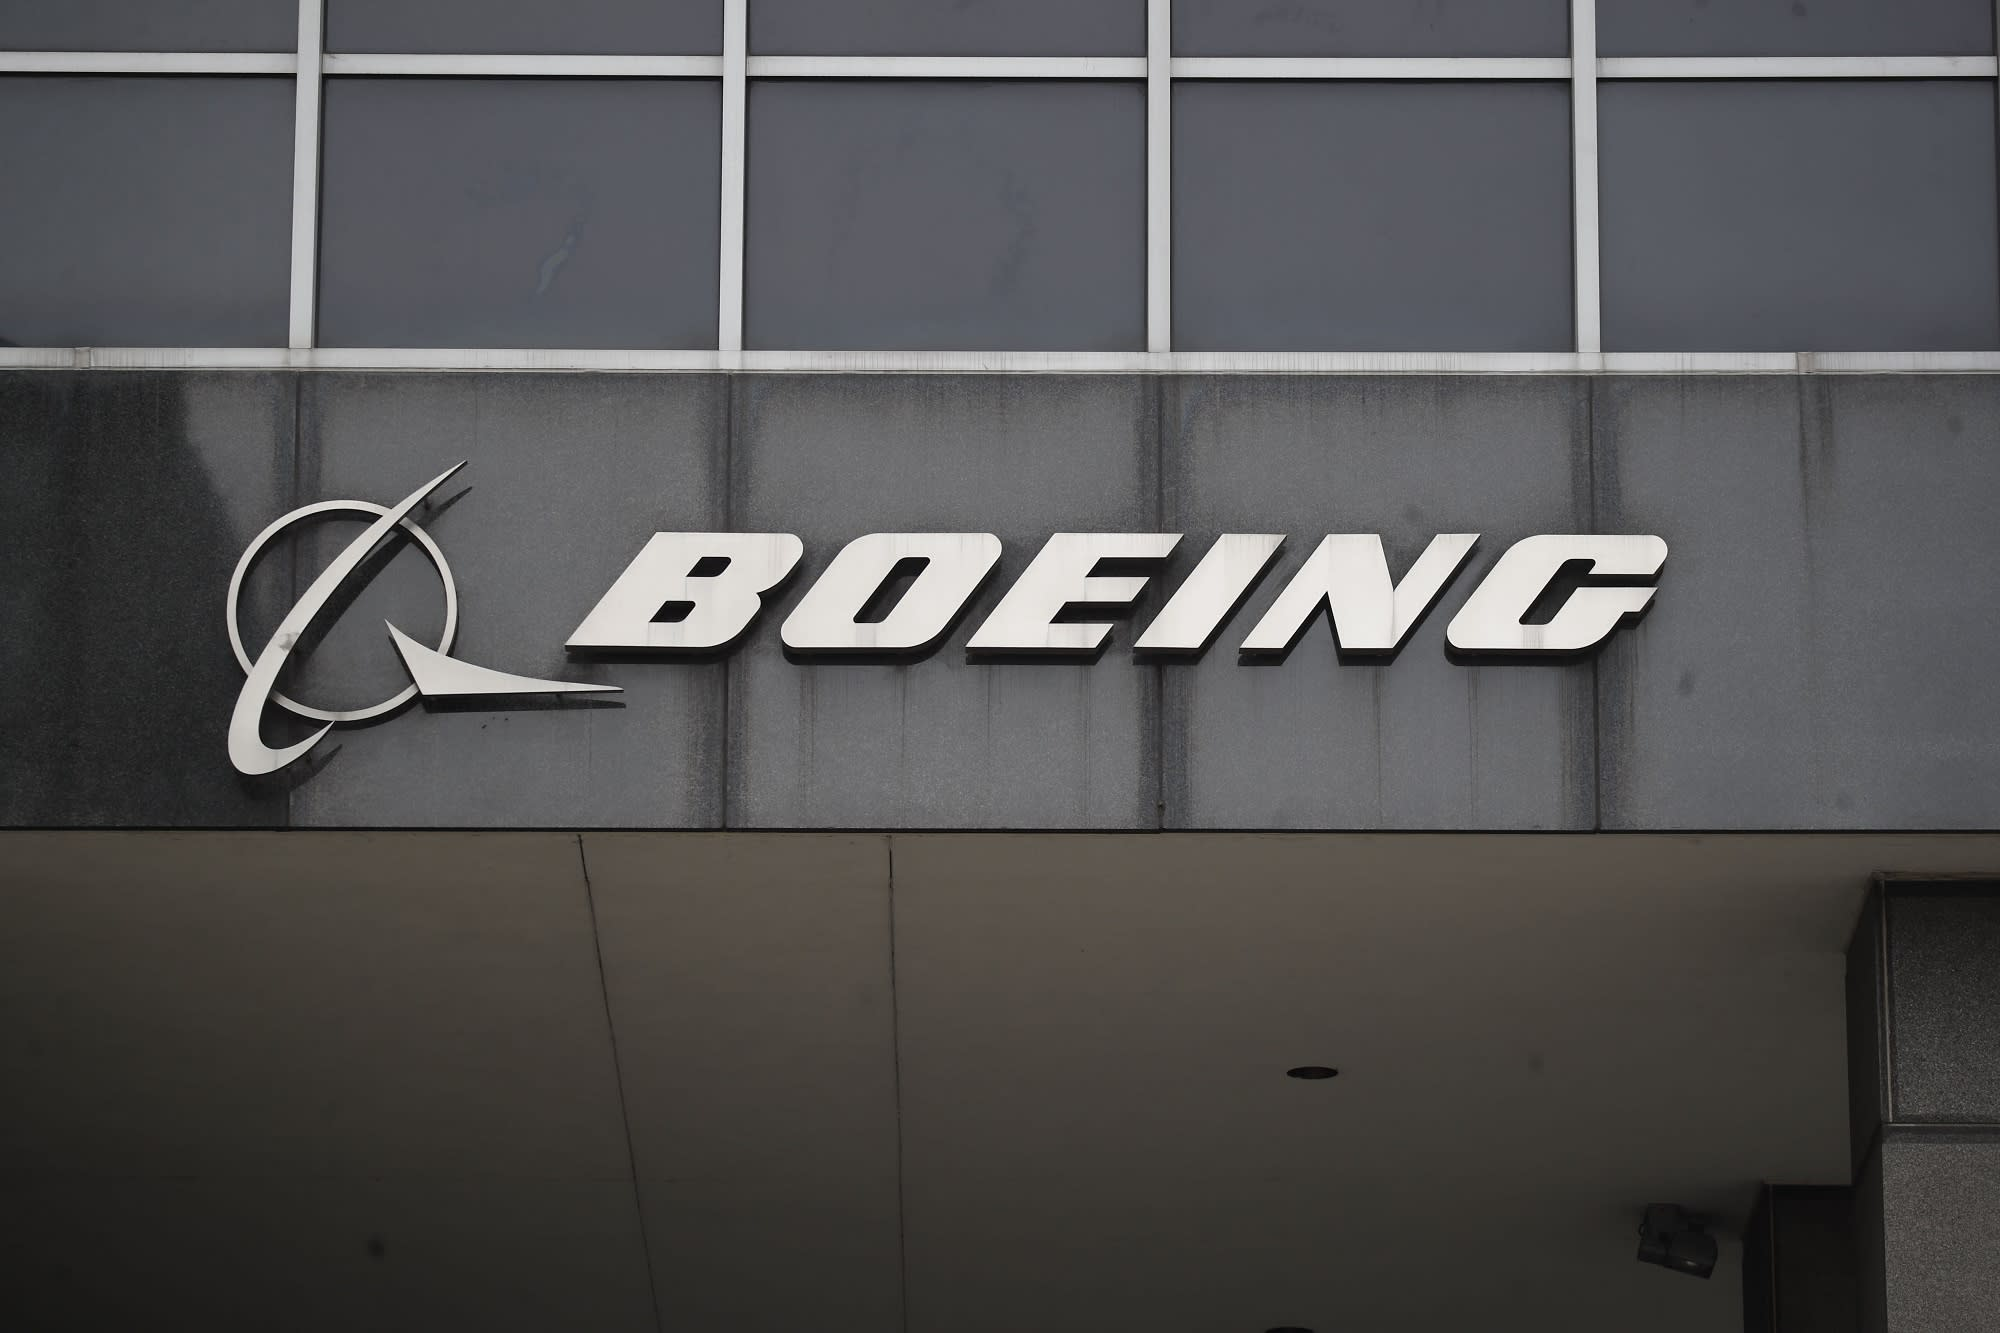 Boeing's stock worth buying on pullback from new 737 Max developments, analyst says